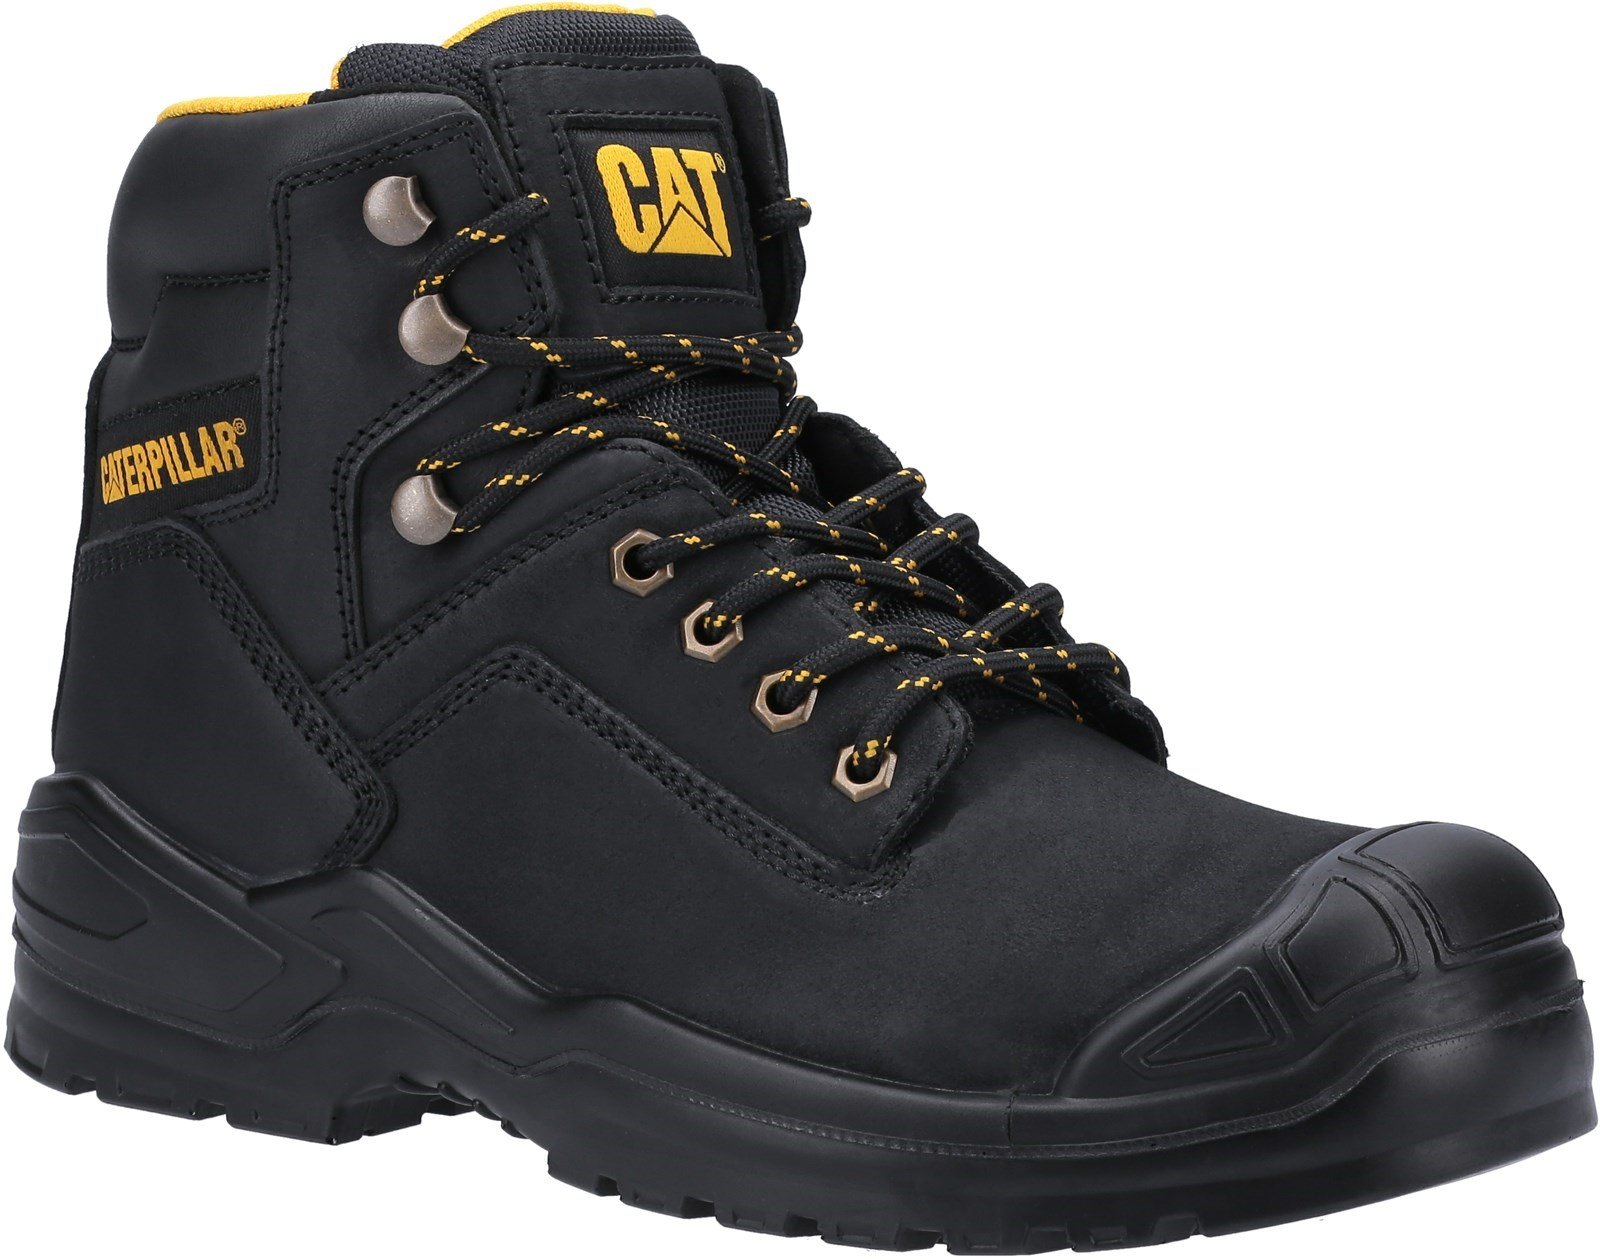 Caterpillar Unisex Striver Mid S3 Safety Boot Various Colours 31900 - Black 6